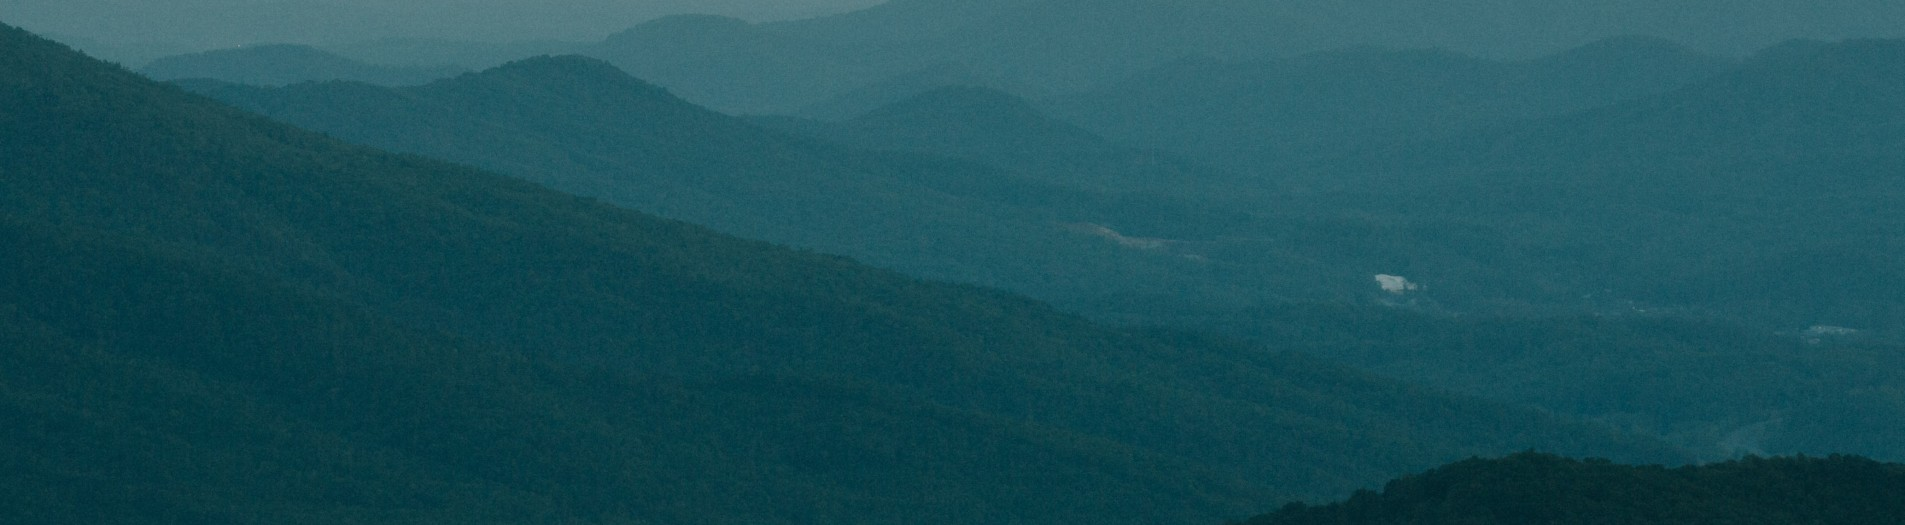 Hawksbill Mountain + Linville Gorge Wilderness | North Carolina